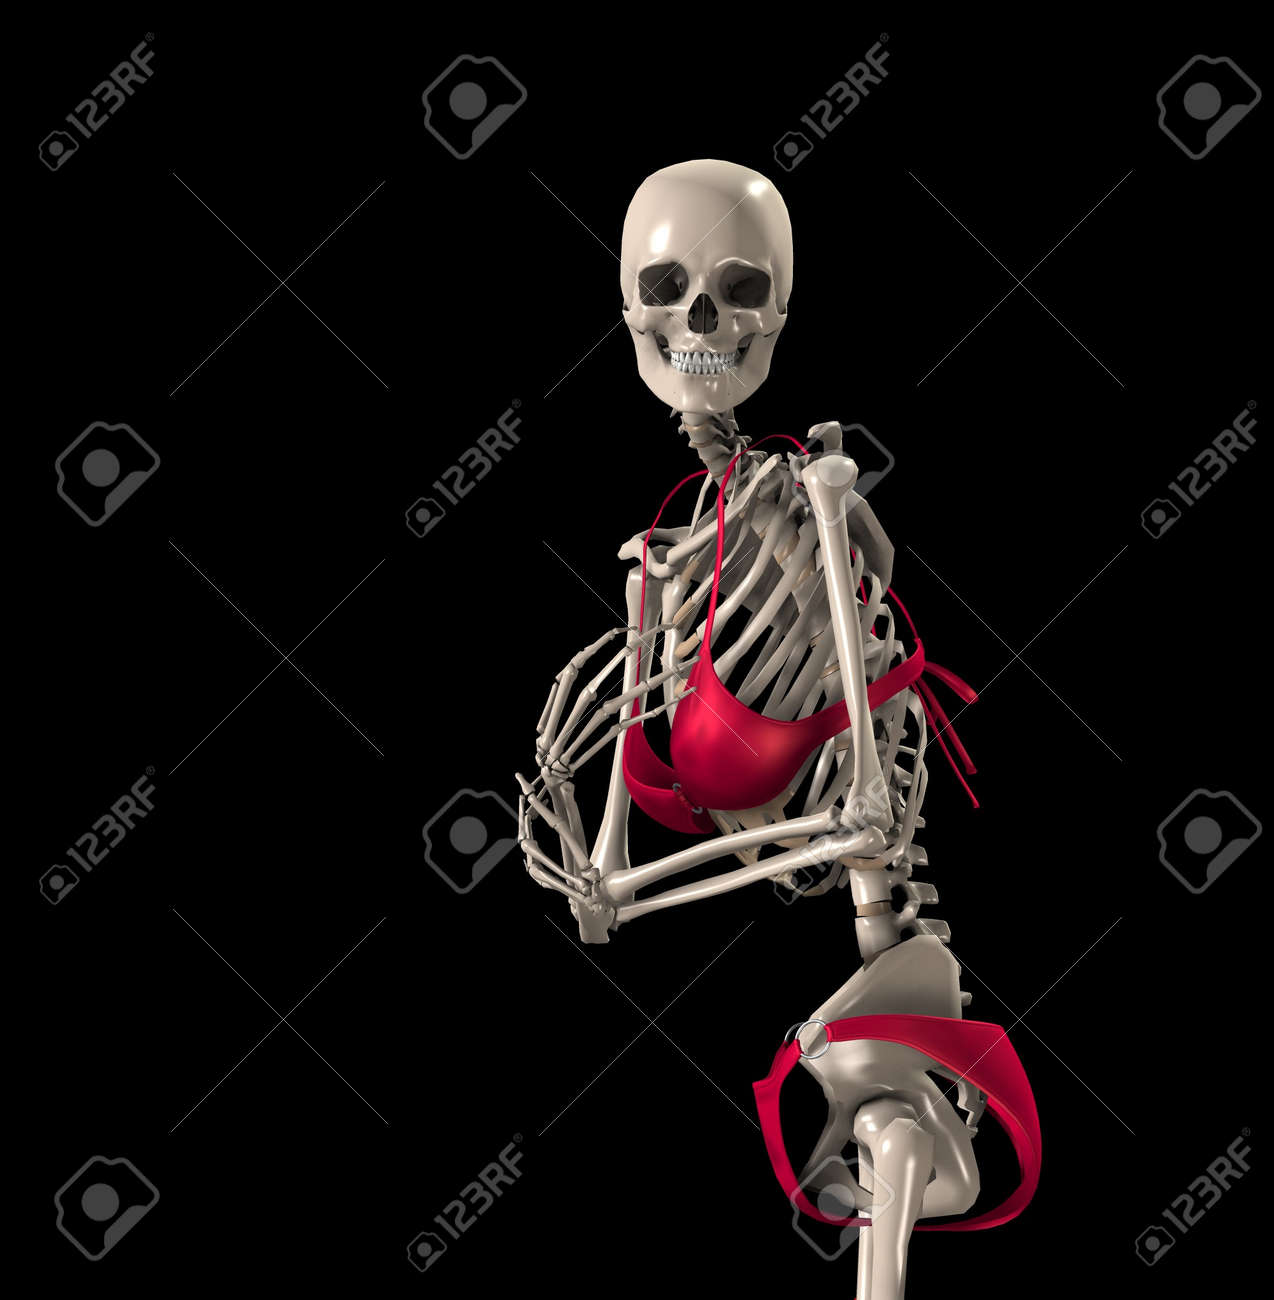 A Humorous Image Of A Skeleton In A Bikini Stock Photo Picture And